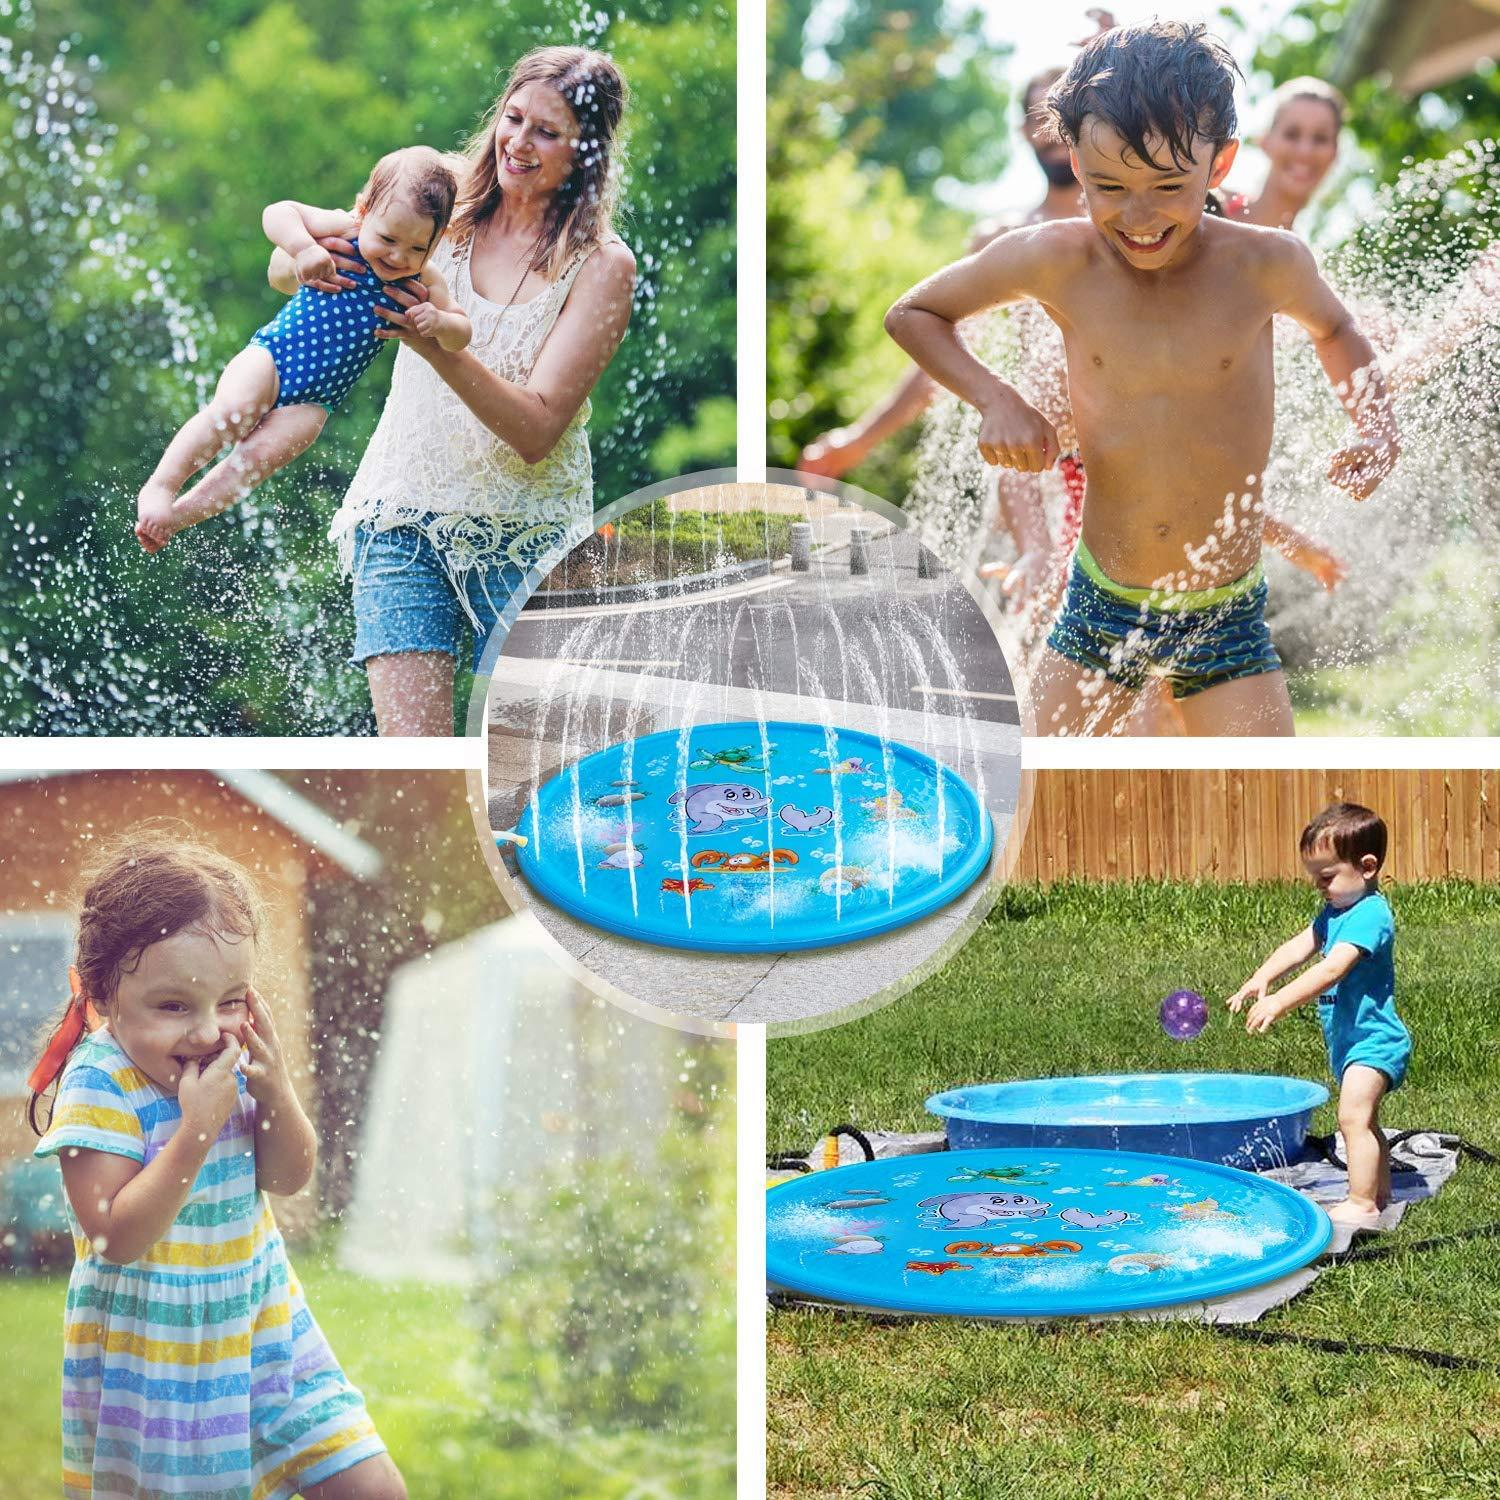 WISTIC-100150170cm-Inflatable-Outdoor-Sprinkle-Pad-Summer-Water-Spray-Carpet-Toy